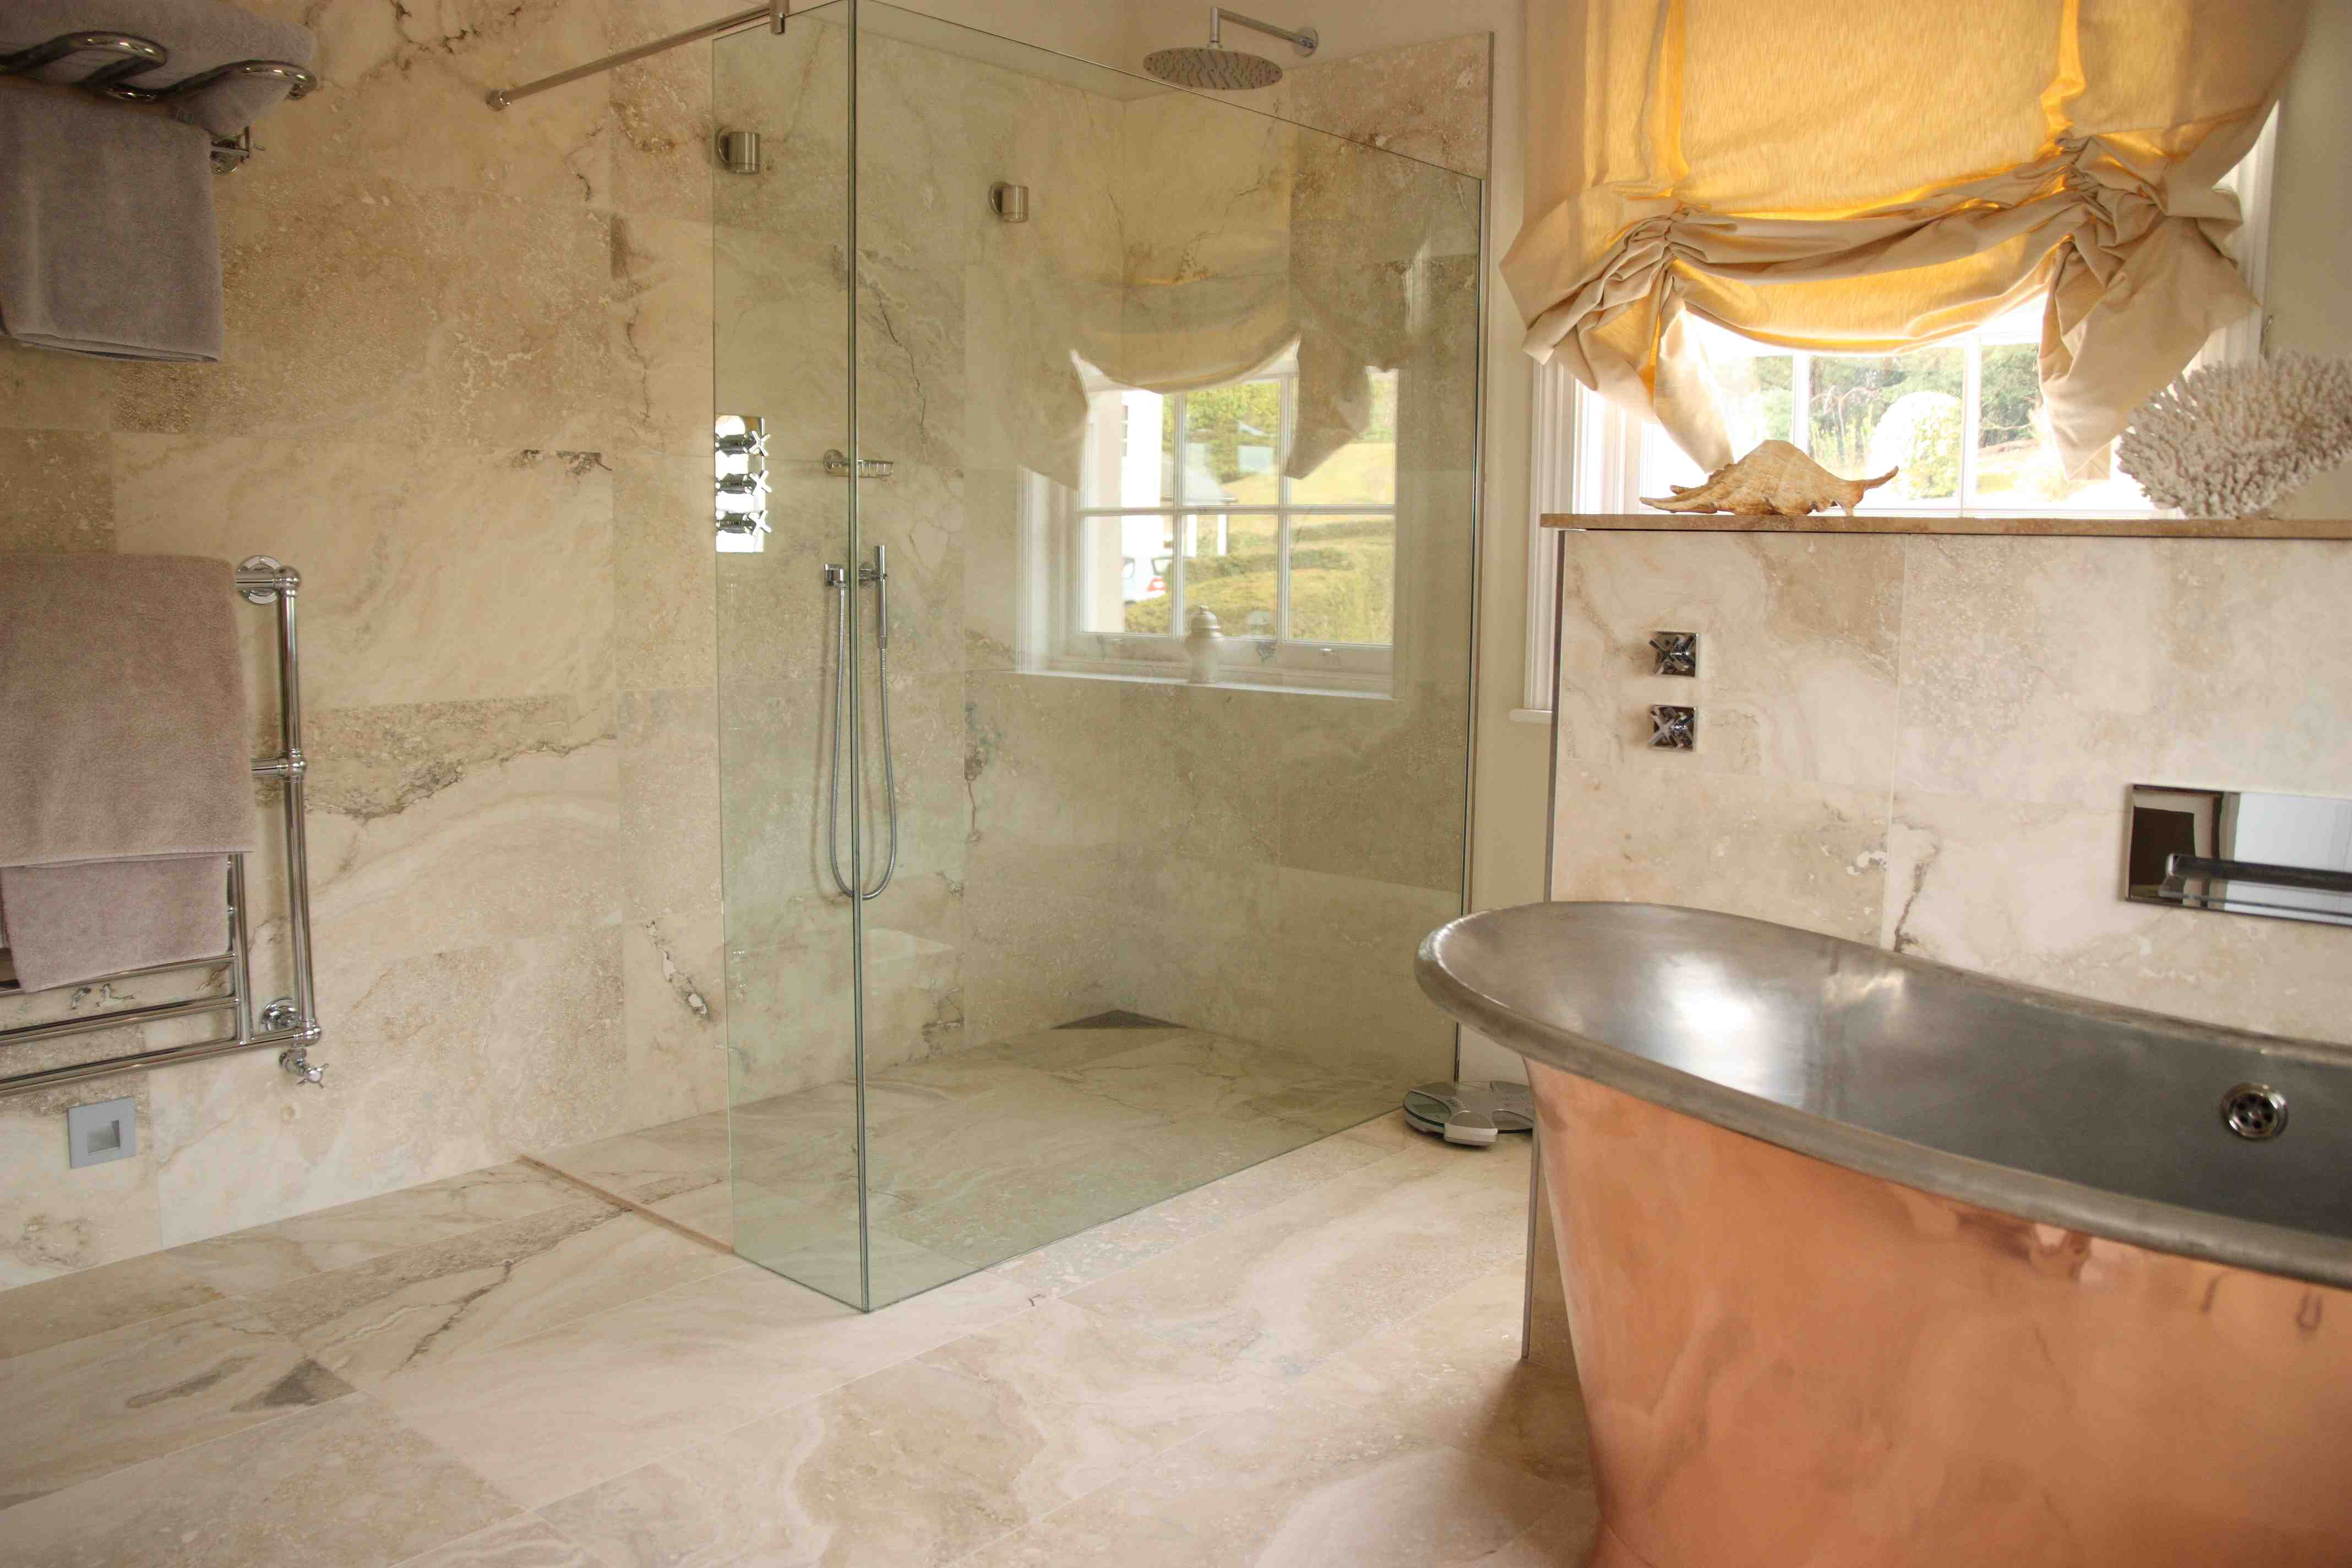 27 nice ideas and pictures of natural stone bathroom wall tiles Travertine bathroom pictures